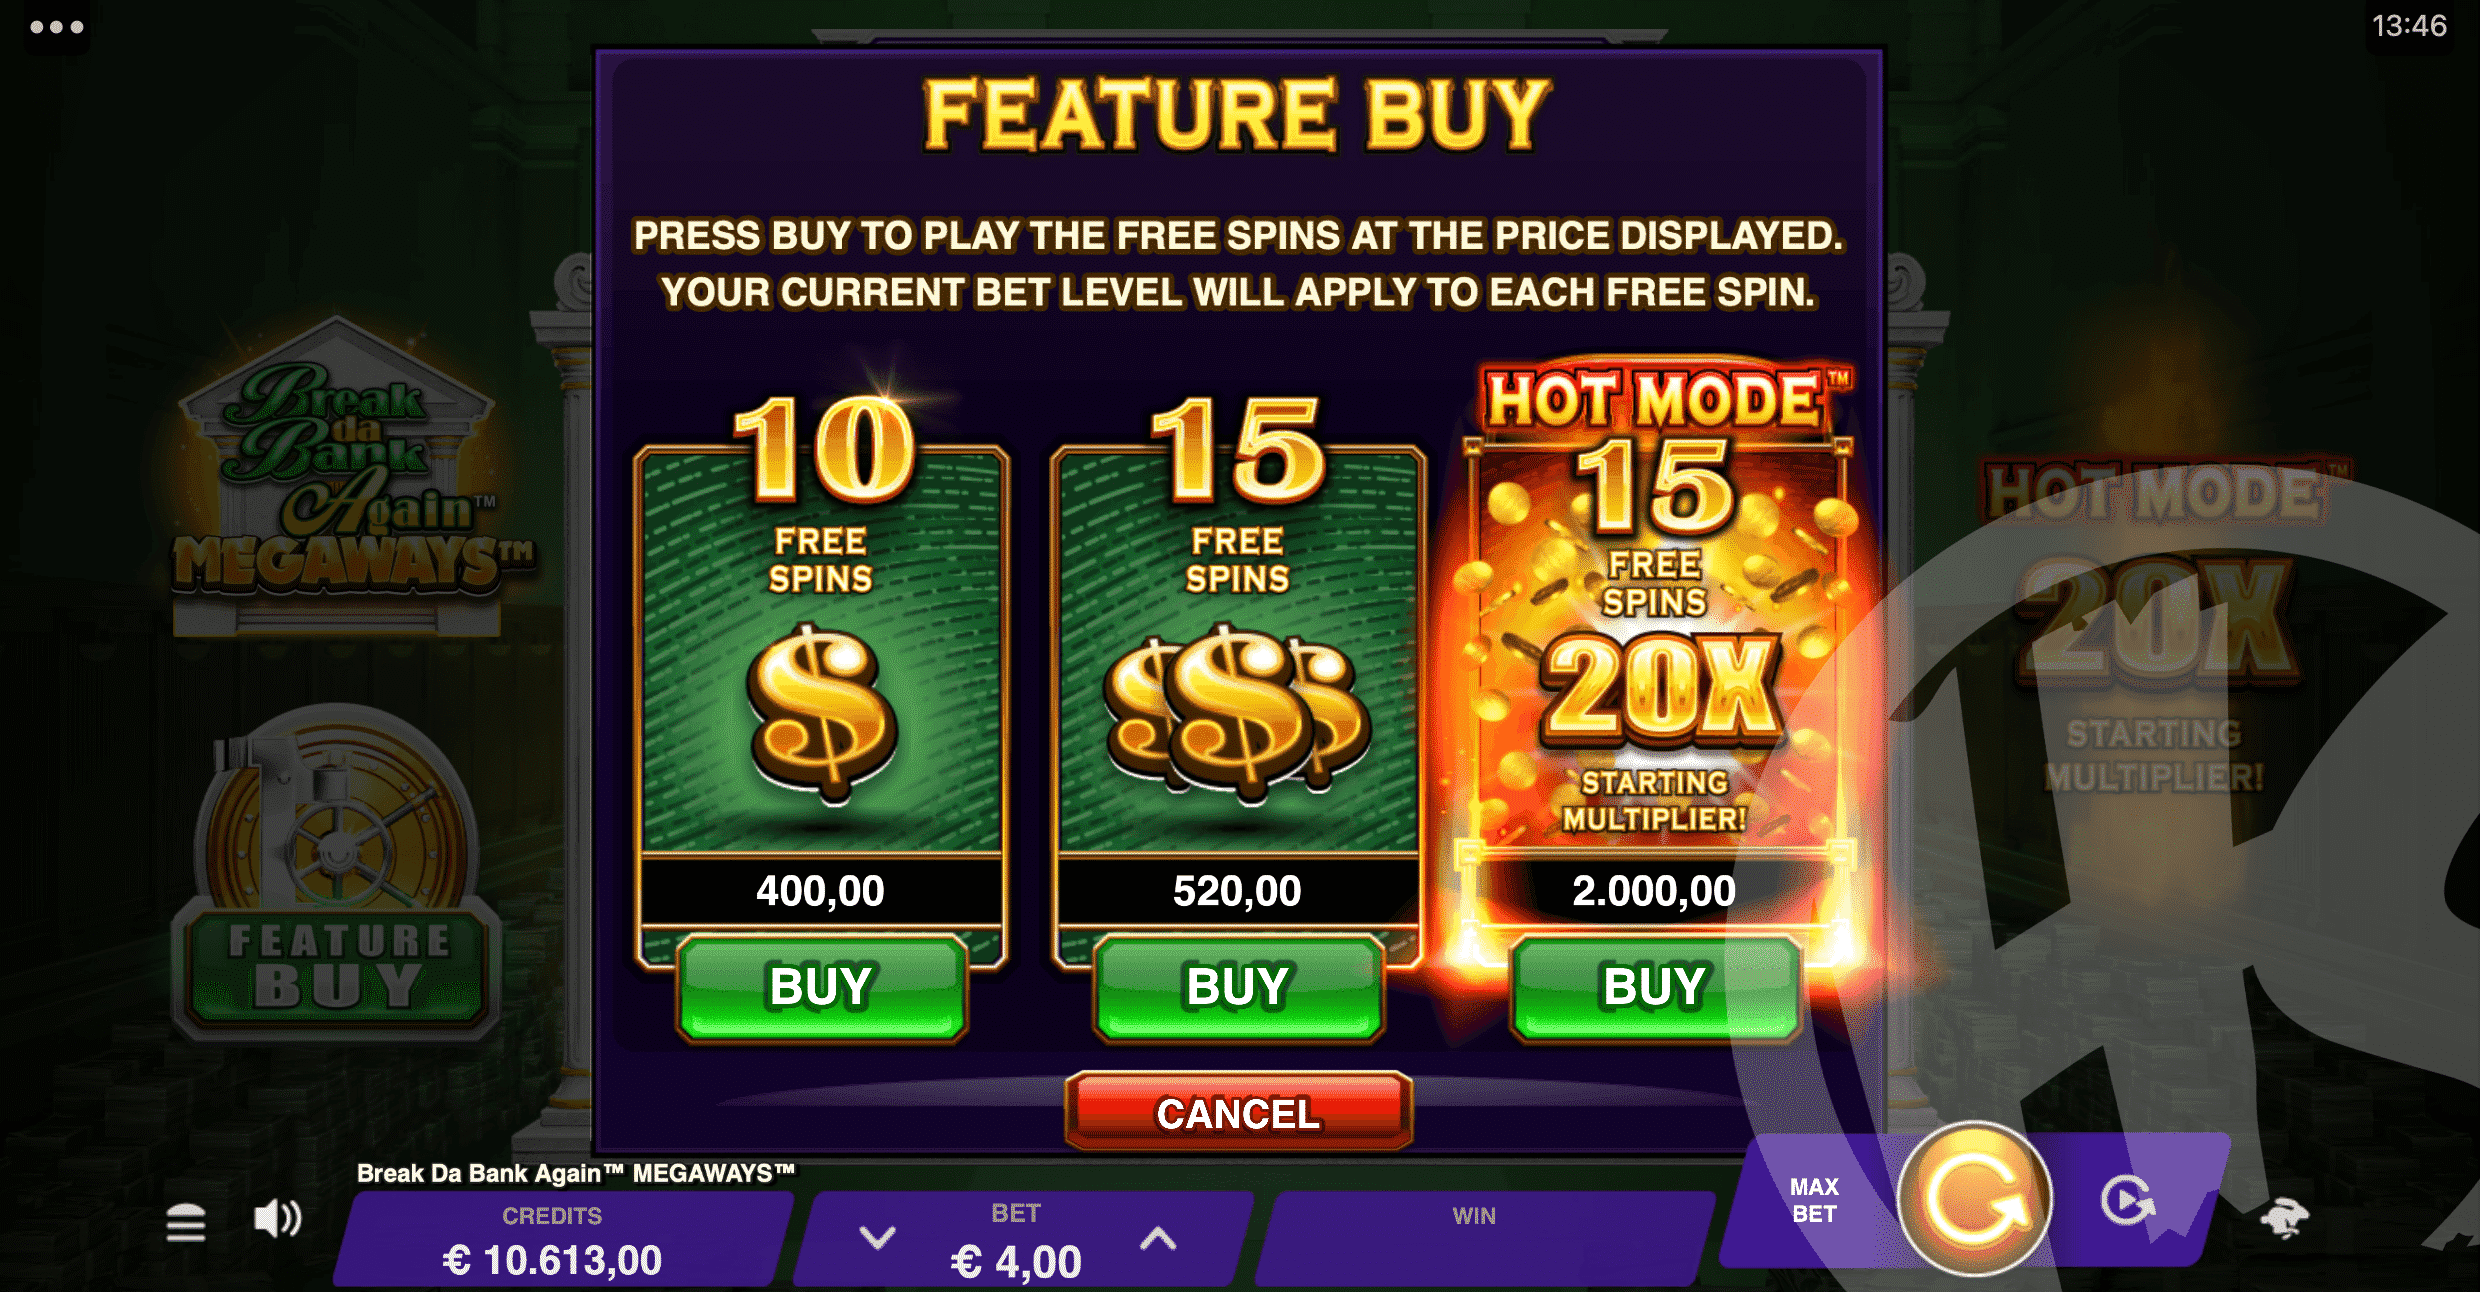 3 Feature Buy Options are Available - Costing 100x, 130x or 500x Bet